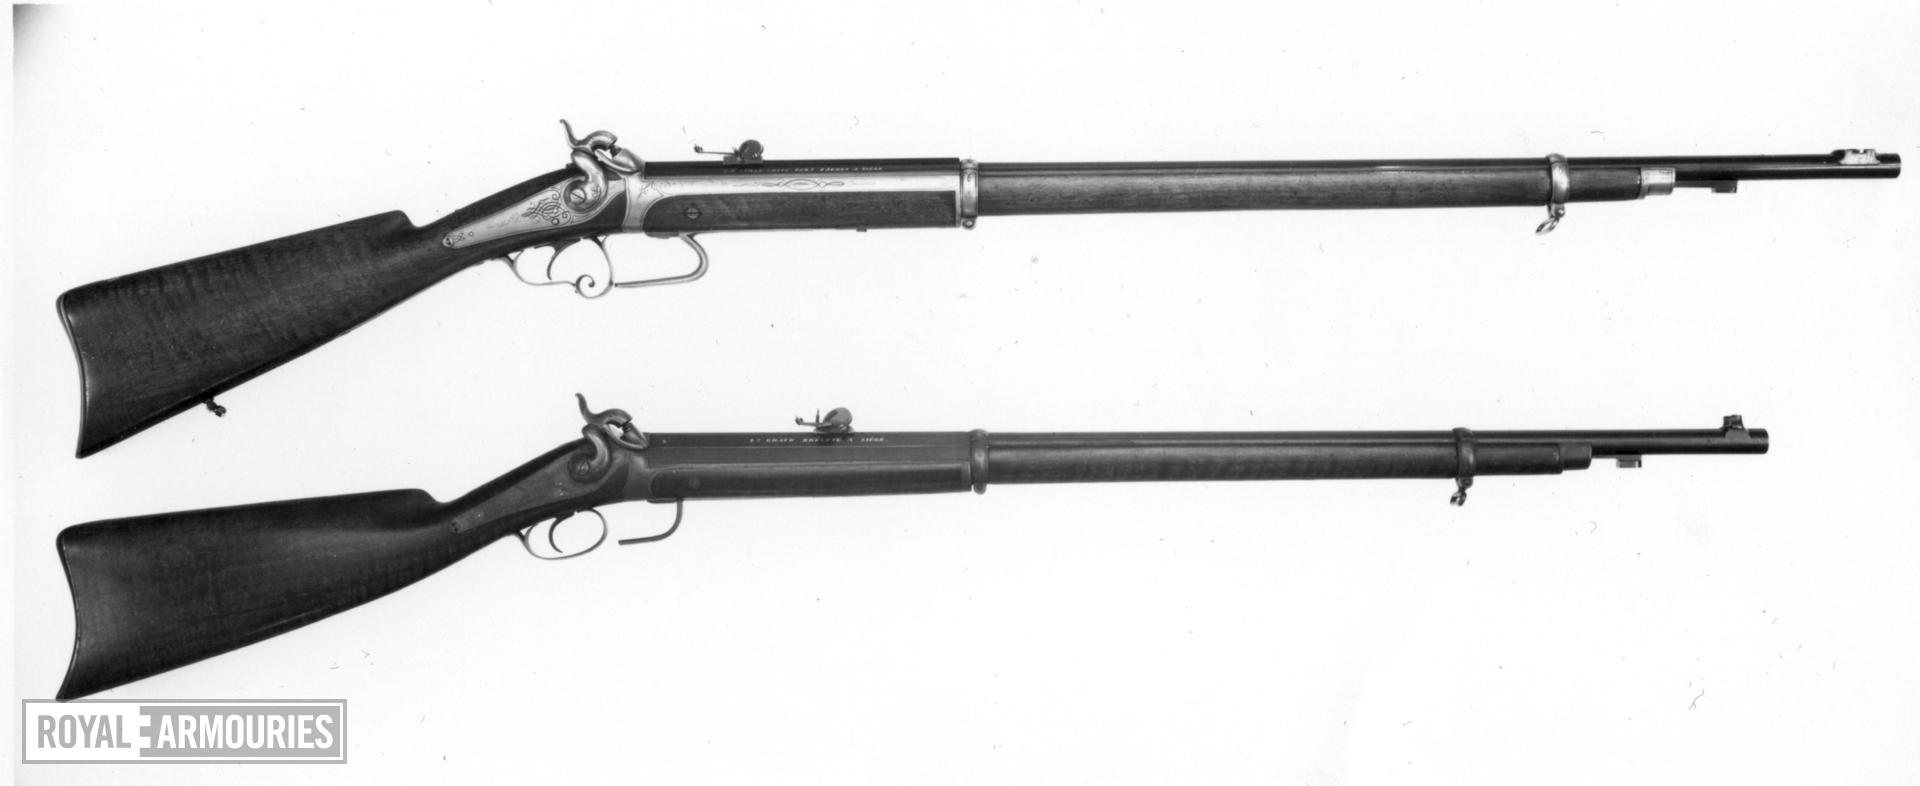 Percussion breech-loading rifle - By J. H. Jamar-Smits Ghaye system